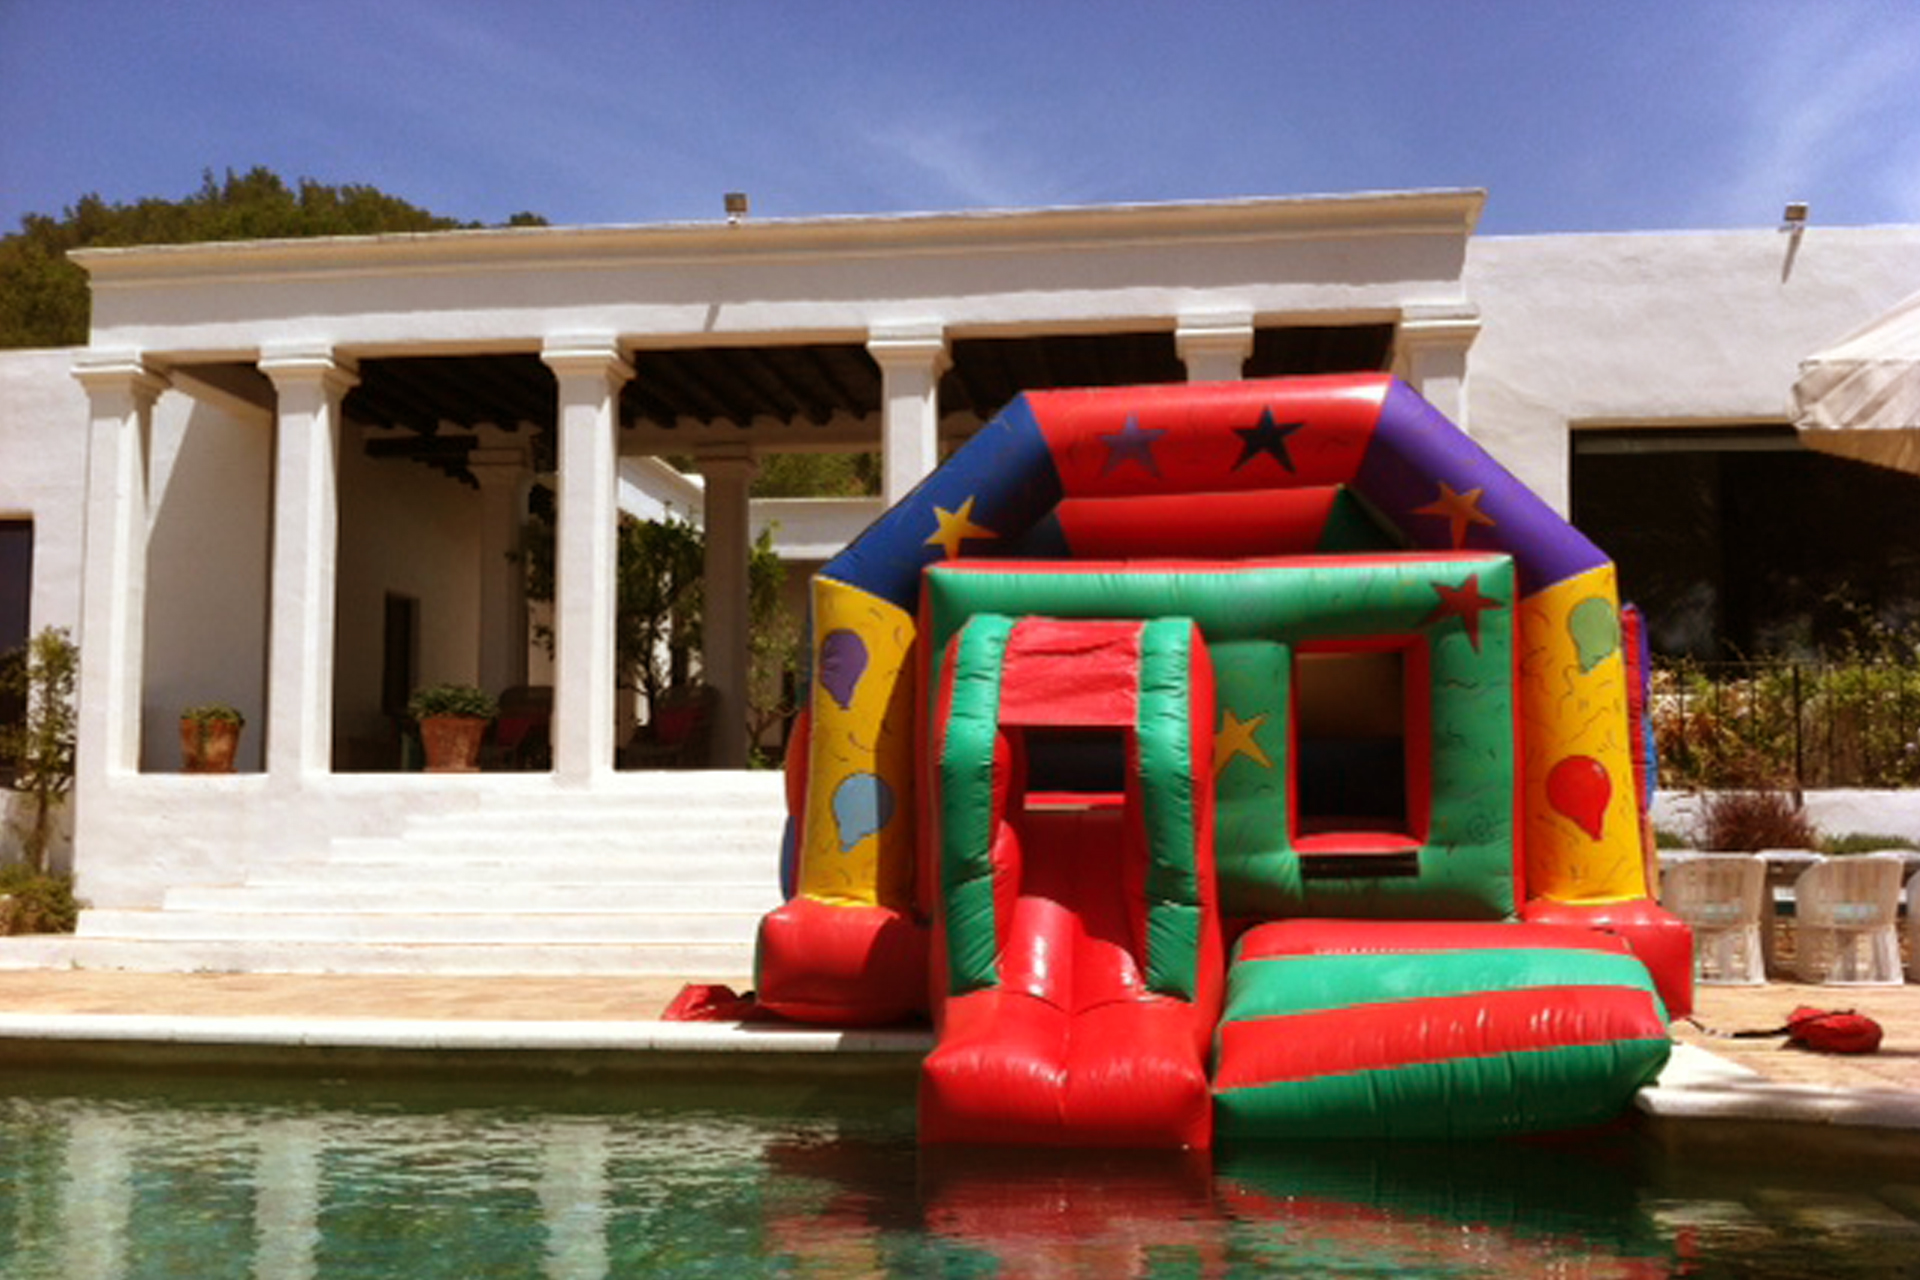 The Fun House Bouncy Castle with inflatable slide ready for a Pool Party in Ibiza